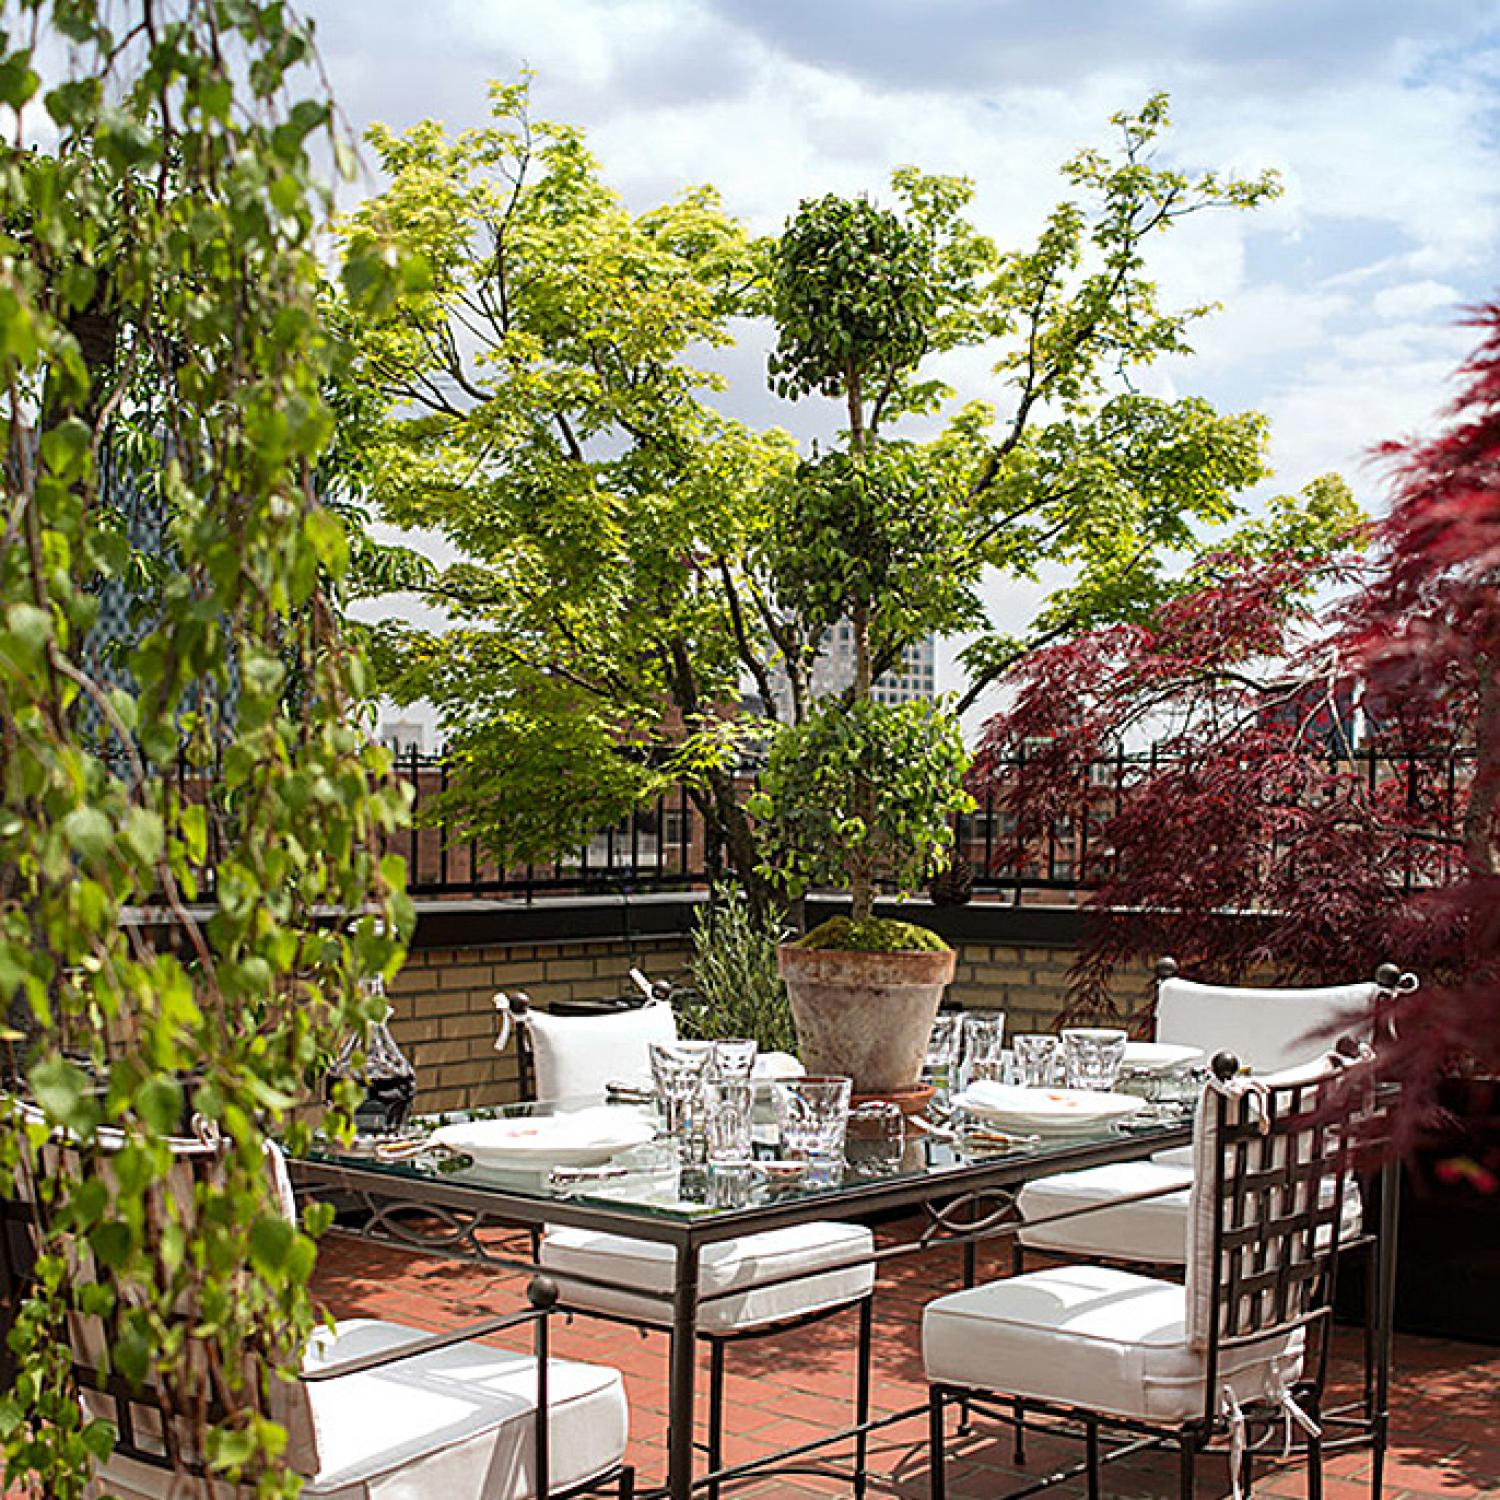 Ralph Rucci's Serene Rooftop Refuge